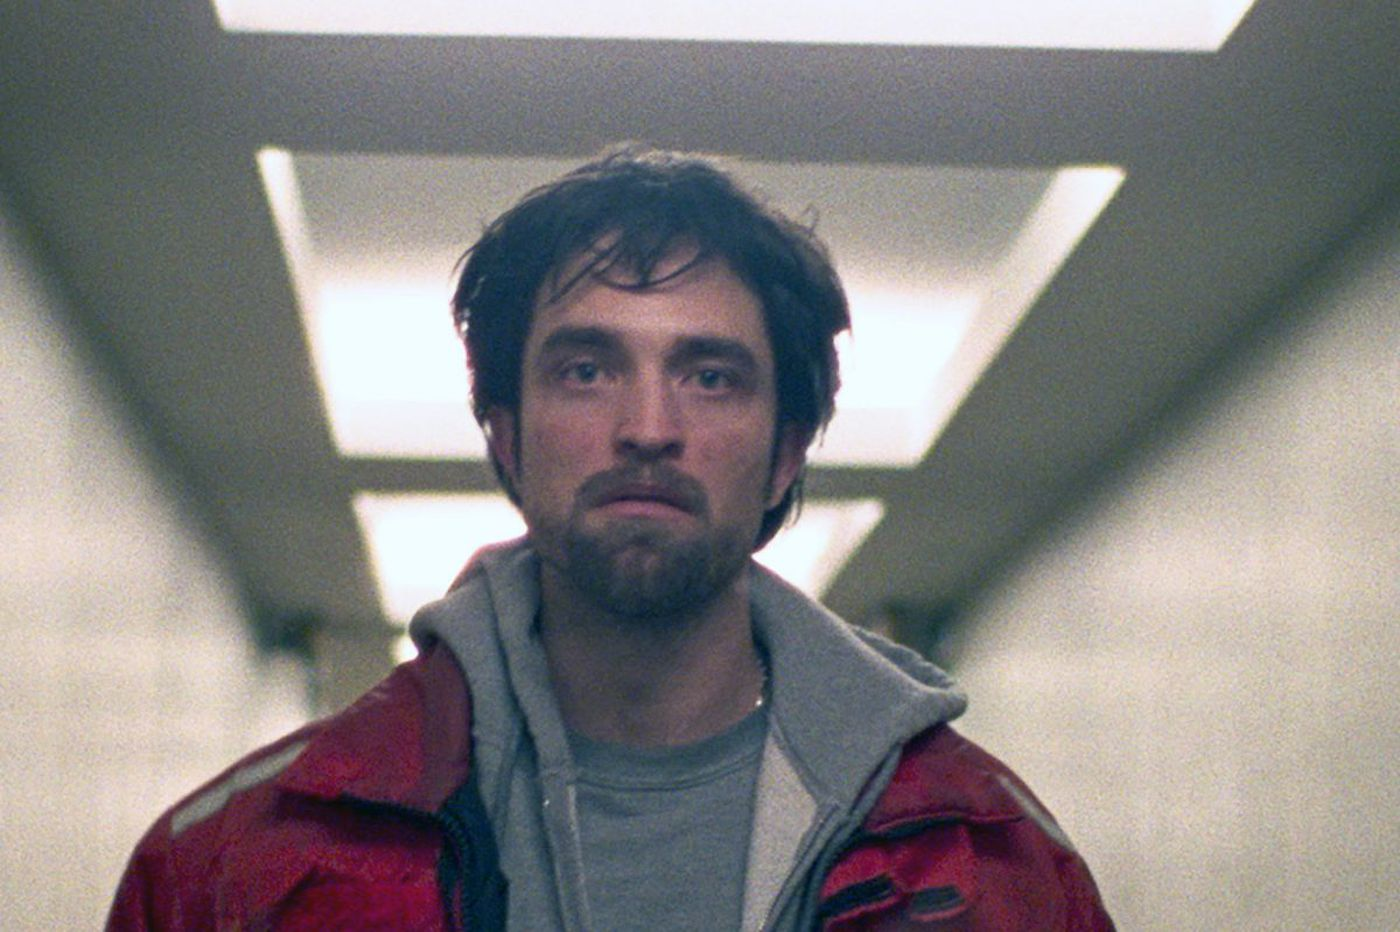 Robert Pattinson's new movie 'Good Time'? You won't have one